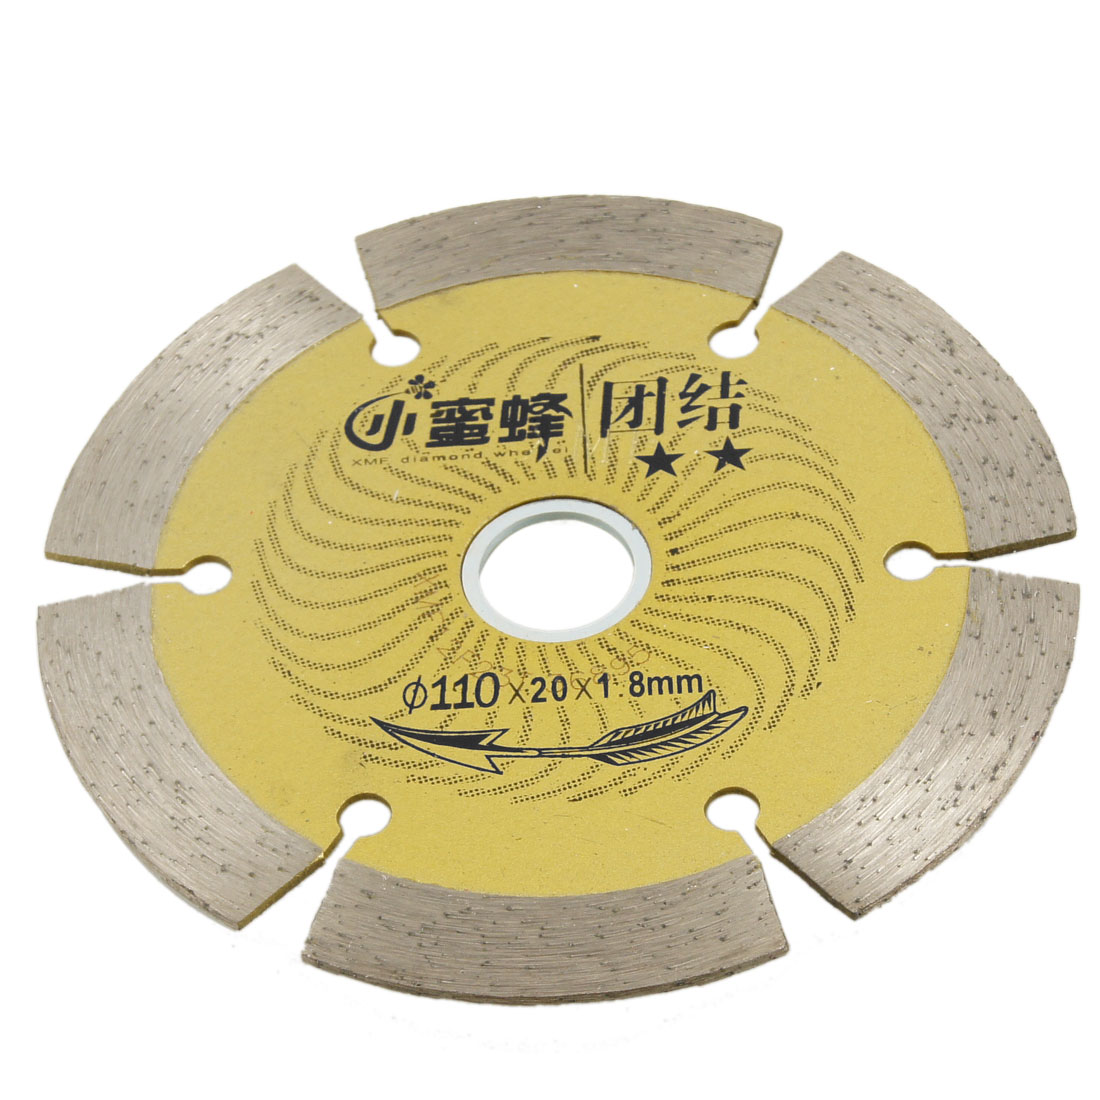 110mm x 16mm x 1.8mm Diamond Circular Crack Chaser Saw Cutter